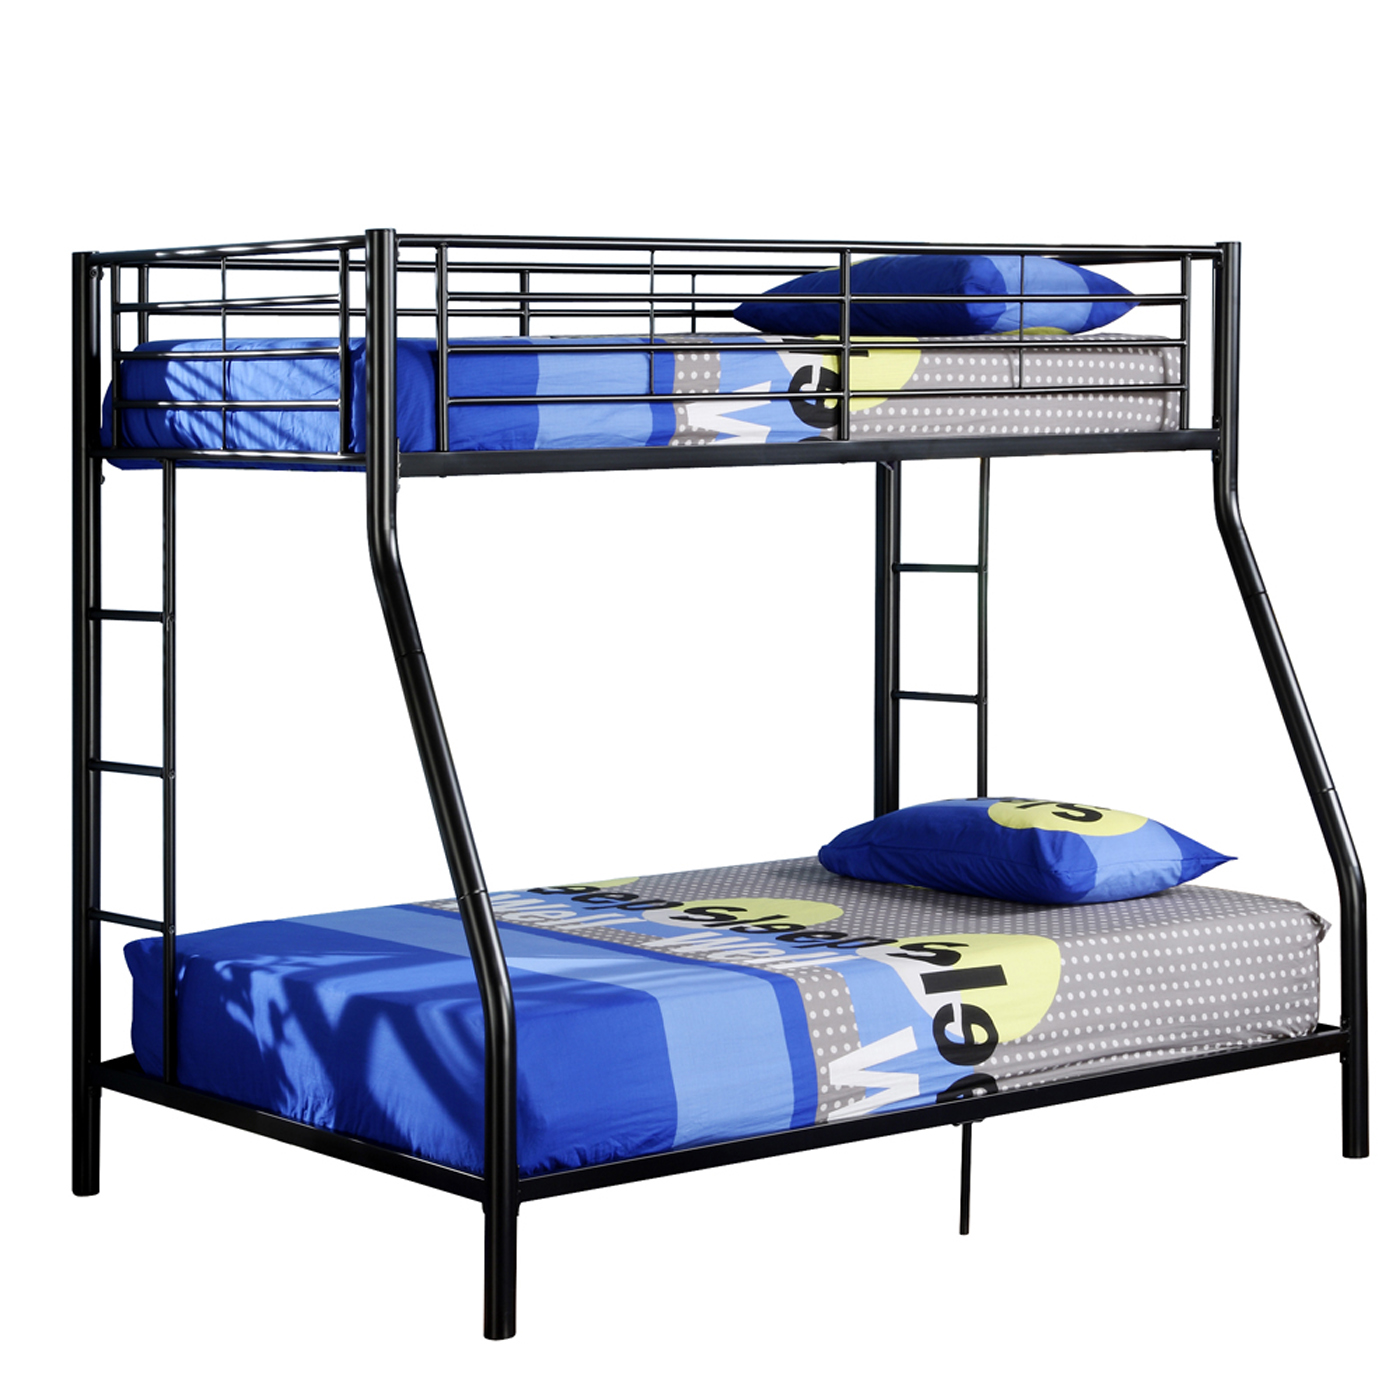 Fashionable Mattresses Included Premium Metal Twin Over Full Bunk Bed Image Premium Metal Twin Over Full Bunk Bed Bunk Beds Twin Over Full Bunk Beds Desk Twin Over Full Bunk Beds baby Twin Over Full Bunk Beds